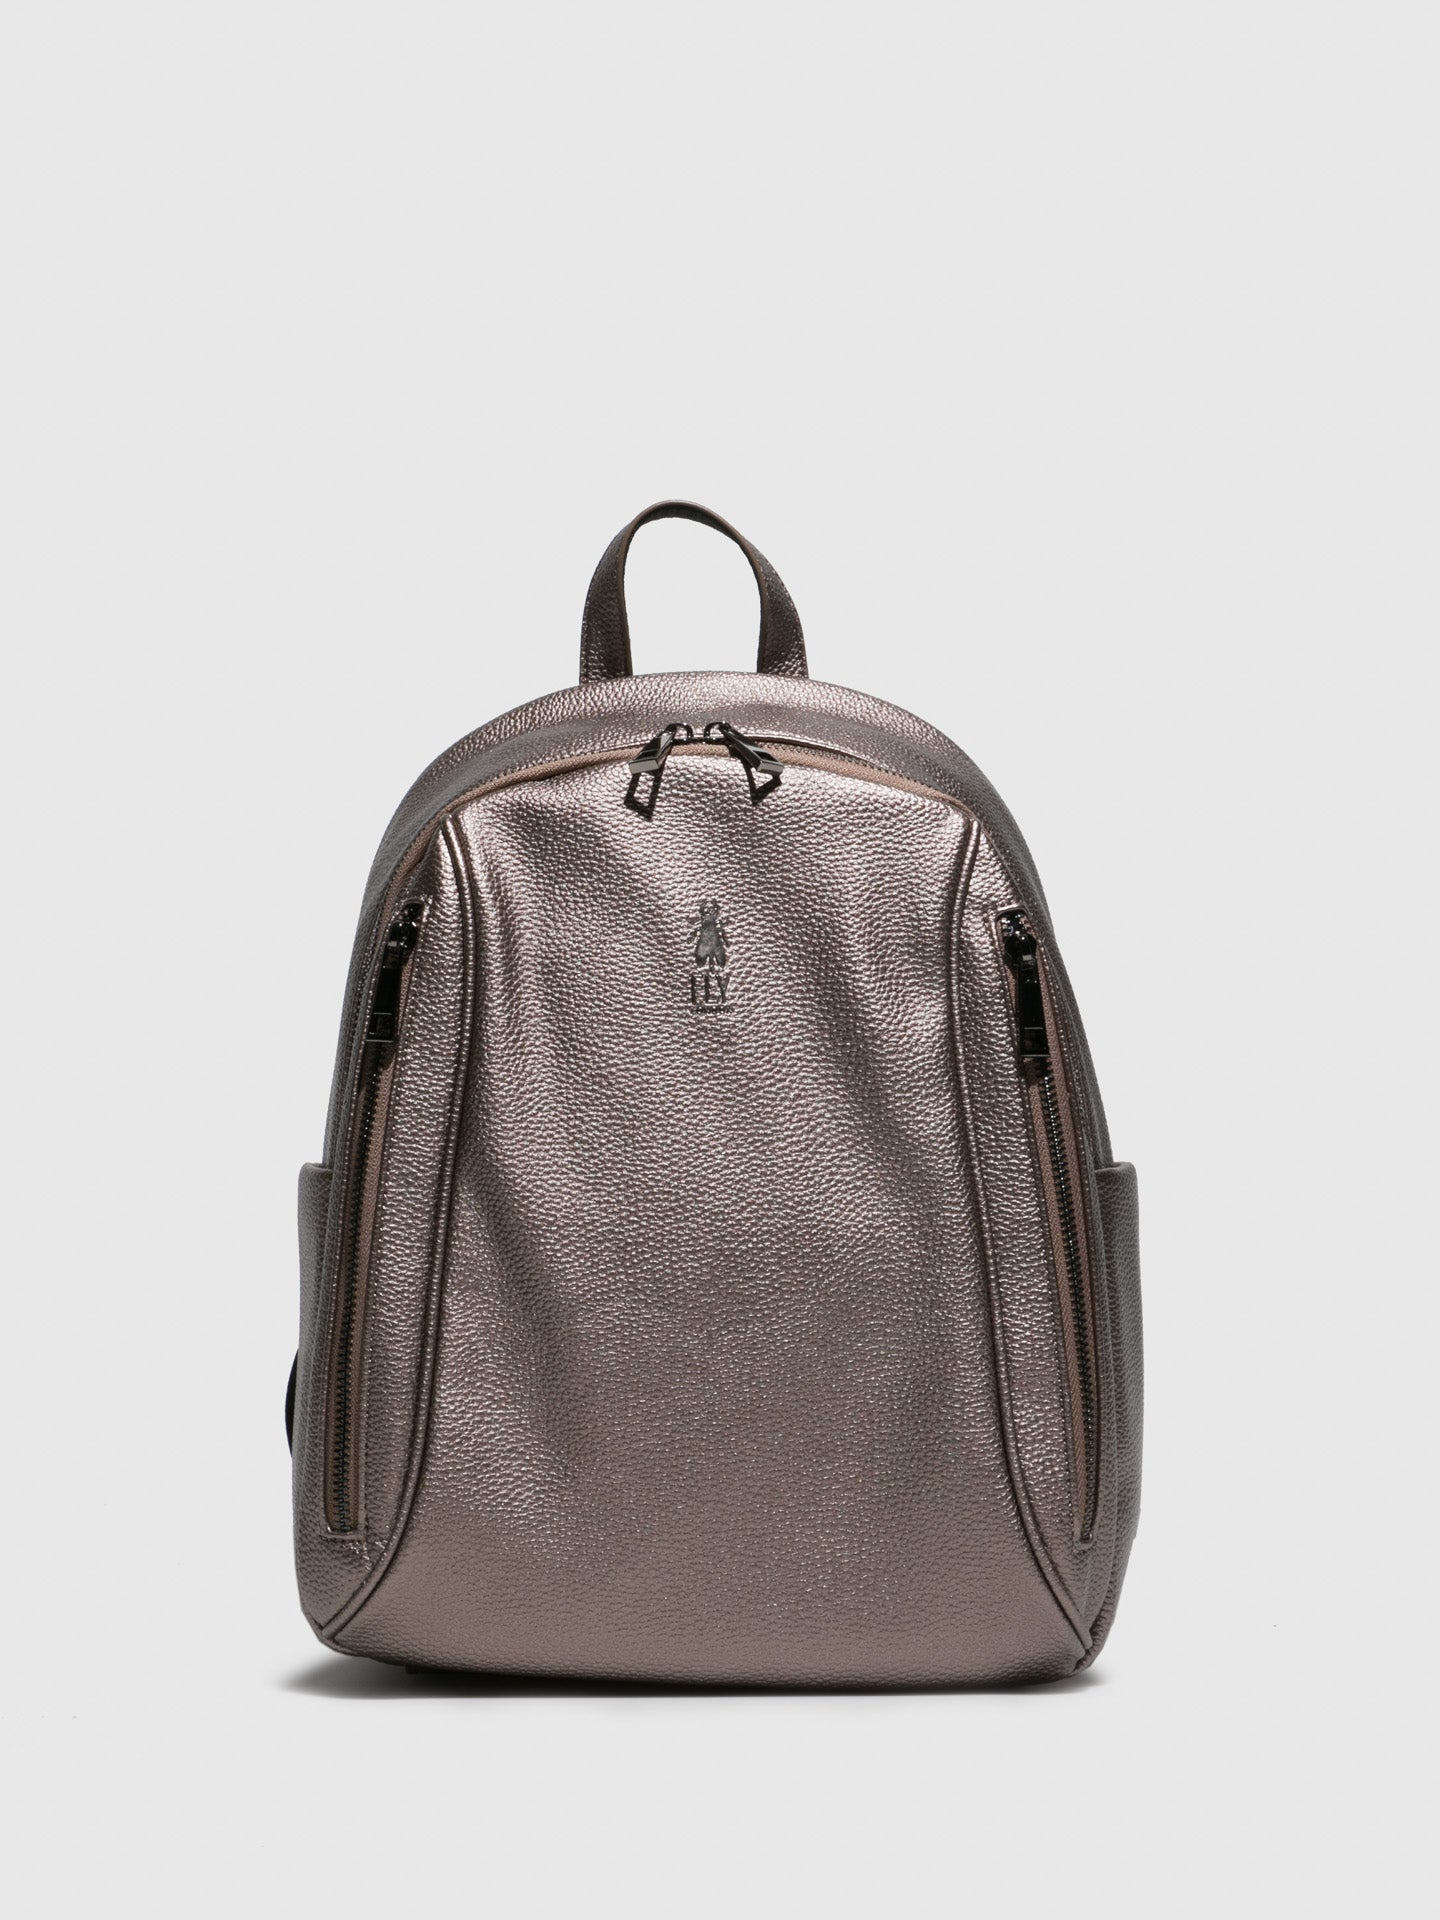 Fly London Backpack Bags AION708FLY MINERVA DK SILVER